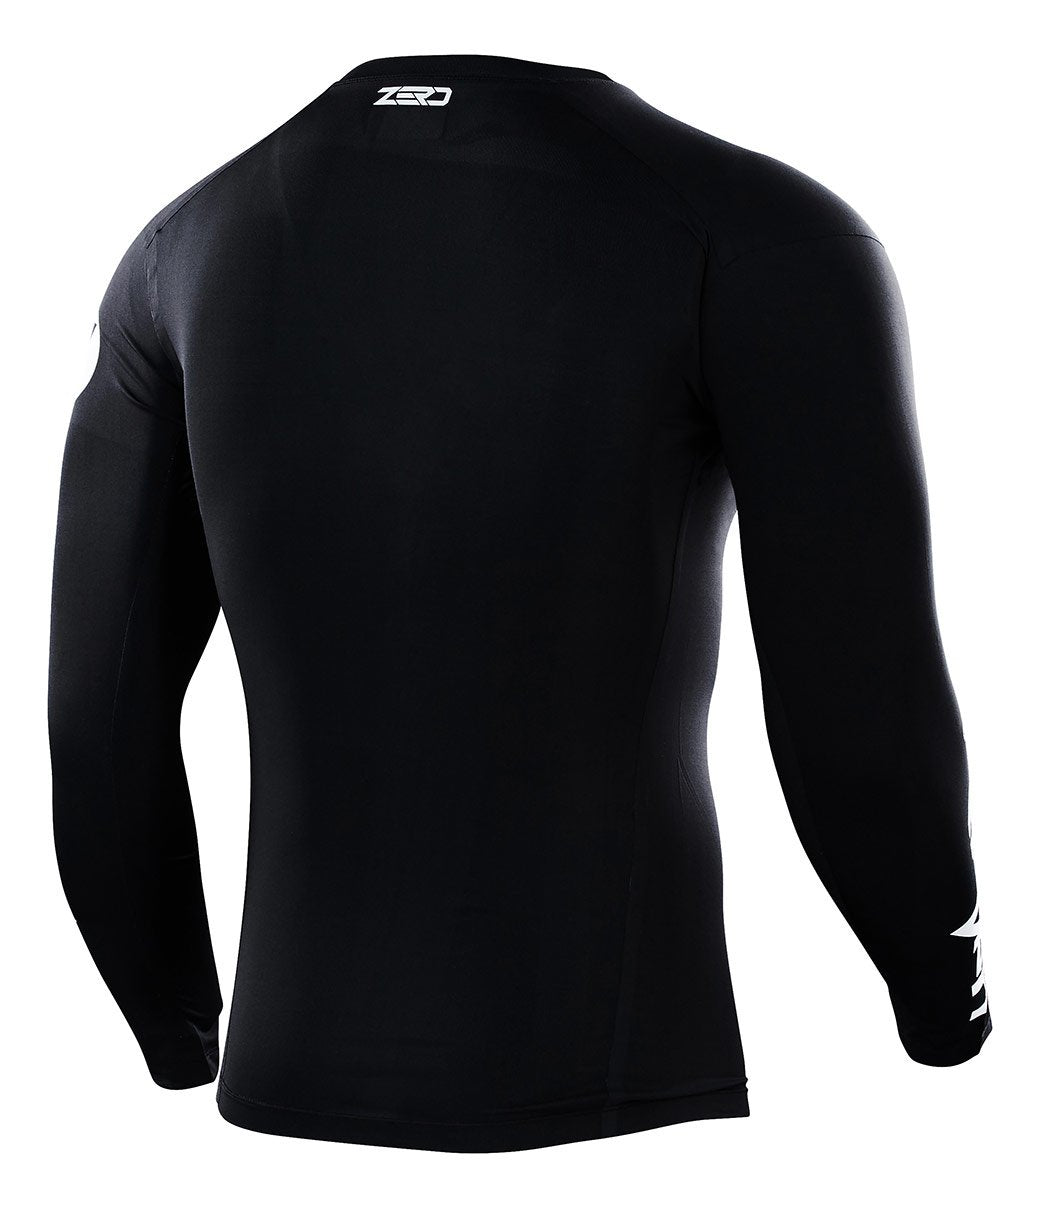 Youth Zero Staple Compression Jersey - Black